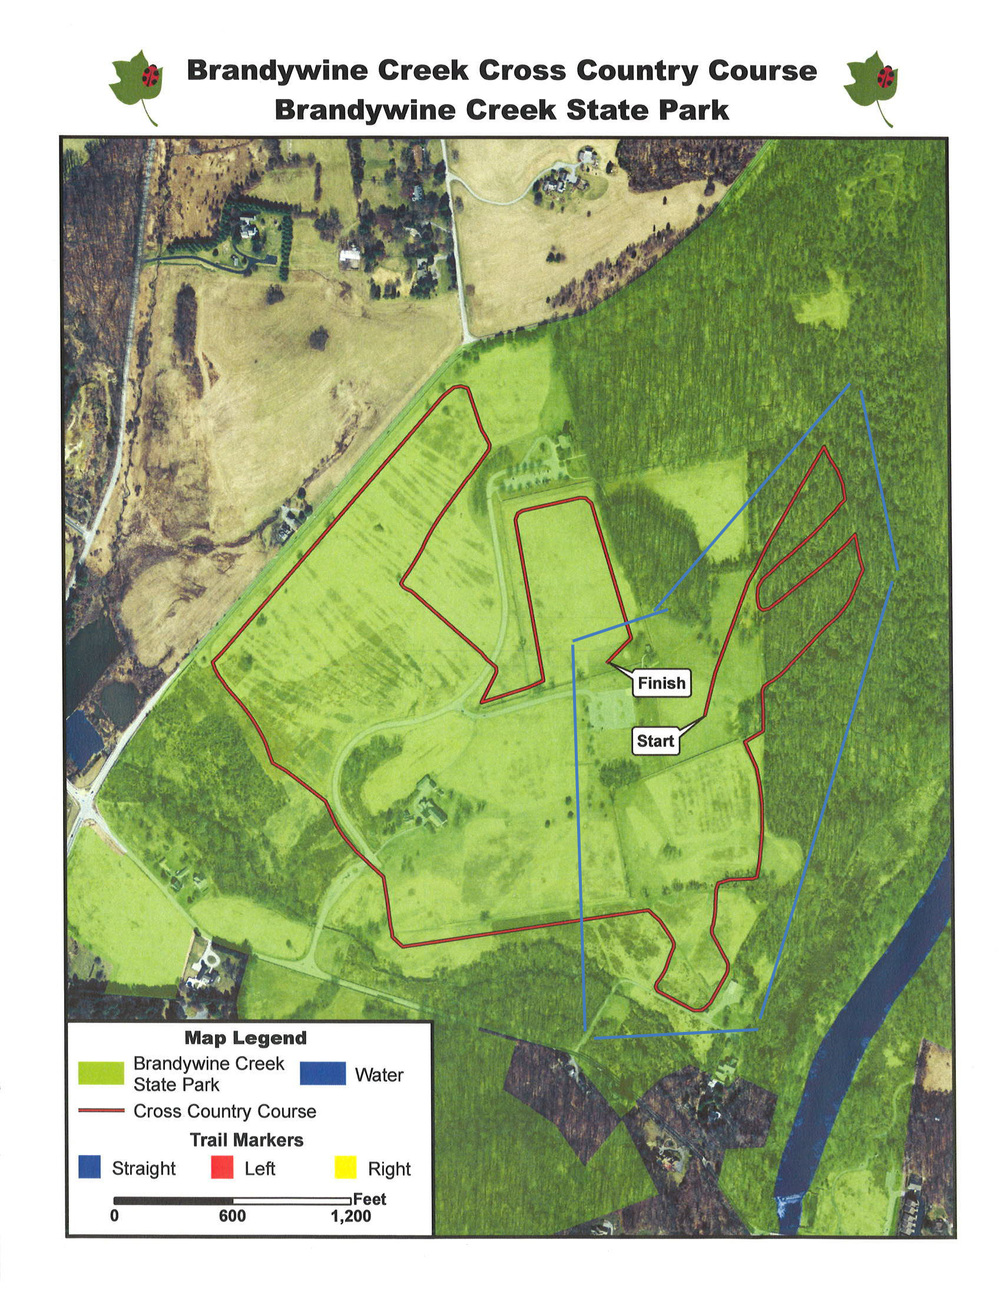 Another map of the Brandywine Creek State Park cross country course. This is the site of the Delaware high school state championships every other year, so it's one of the tougher running trails around.